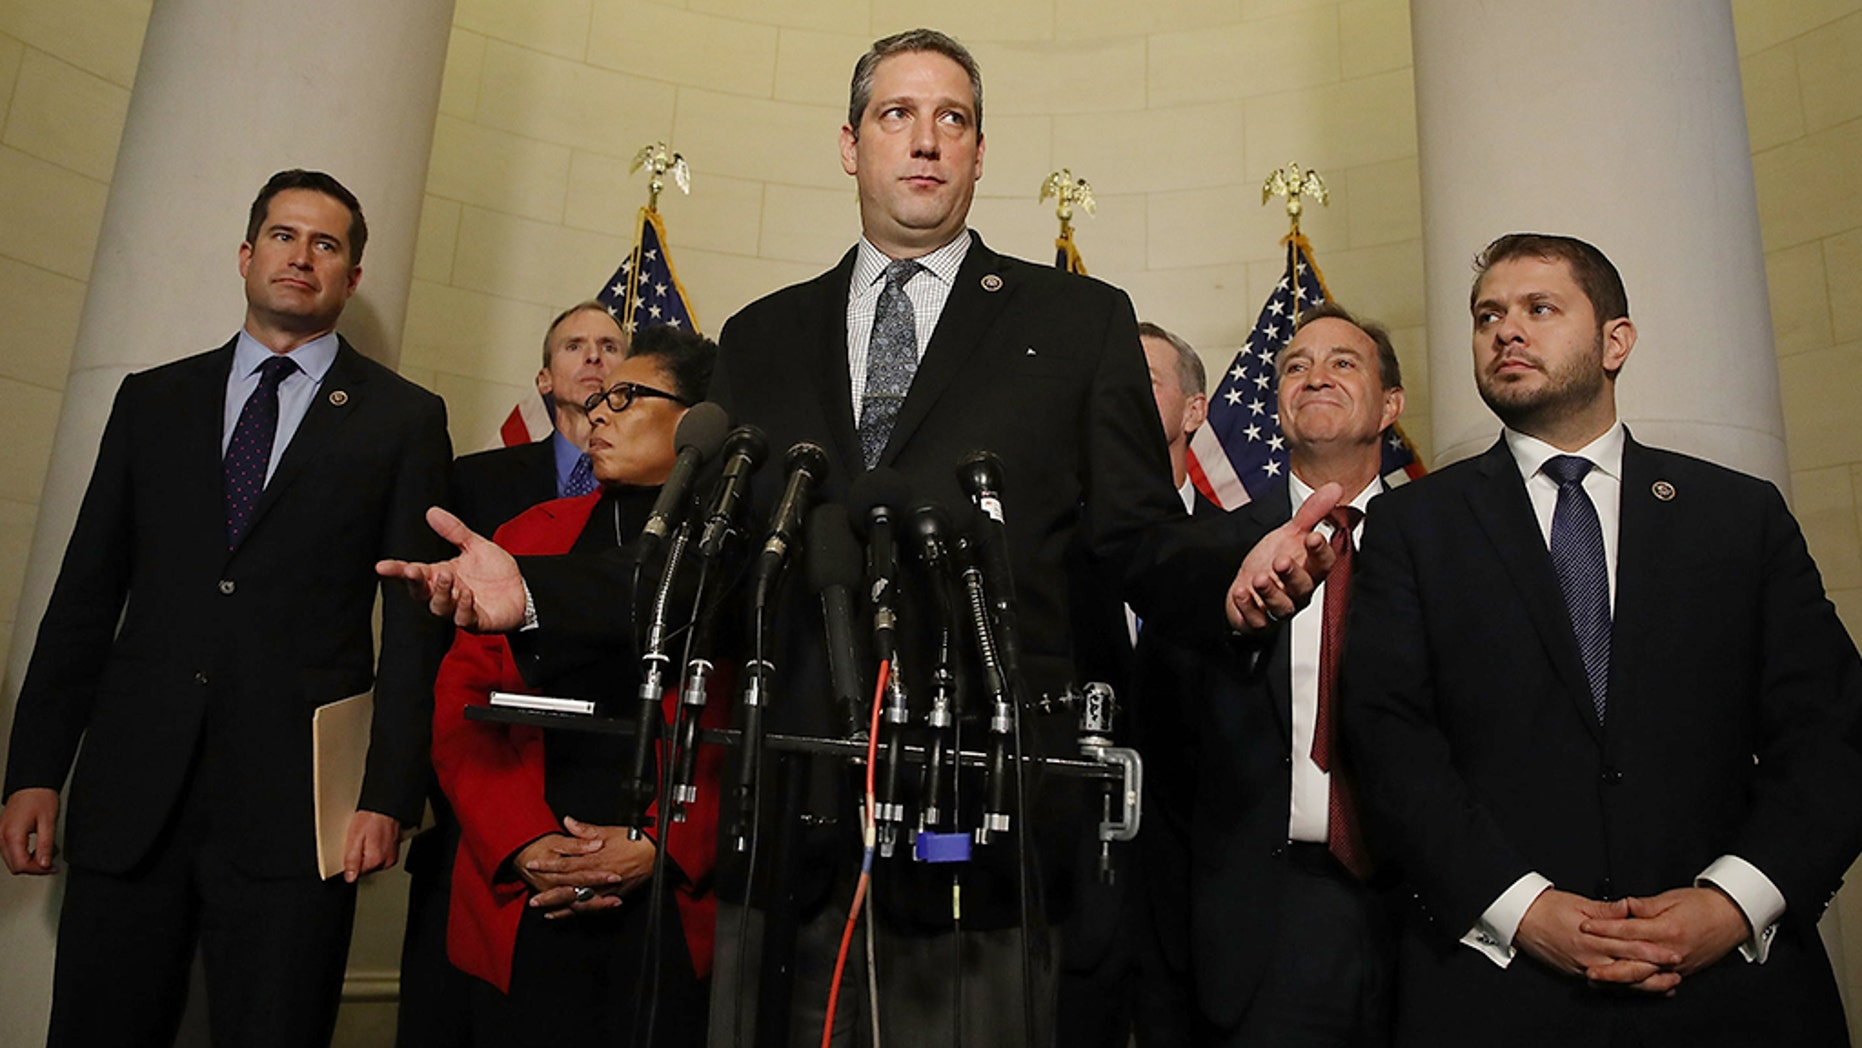 OH congressman Tim Ryan enters 2020 presidential race